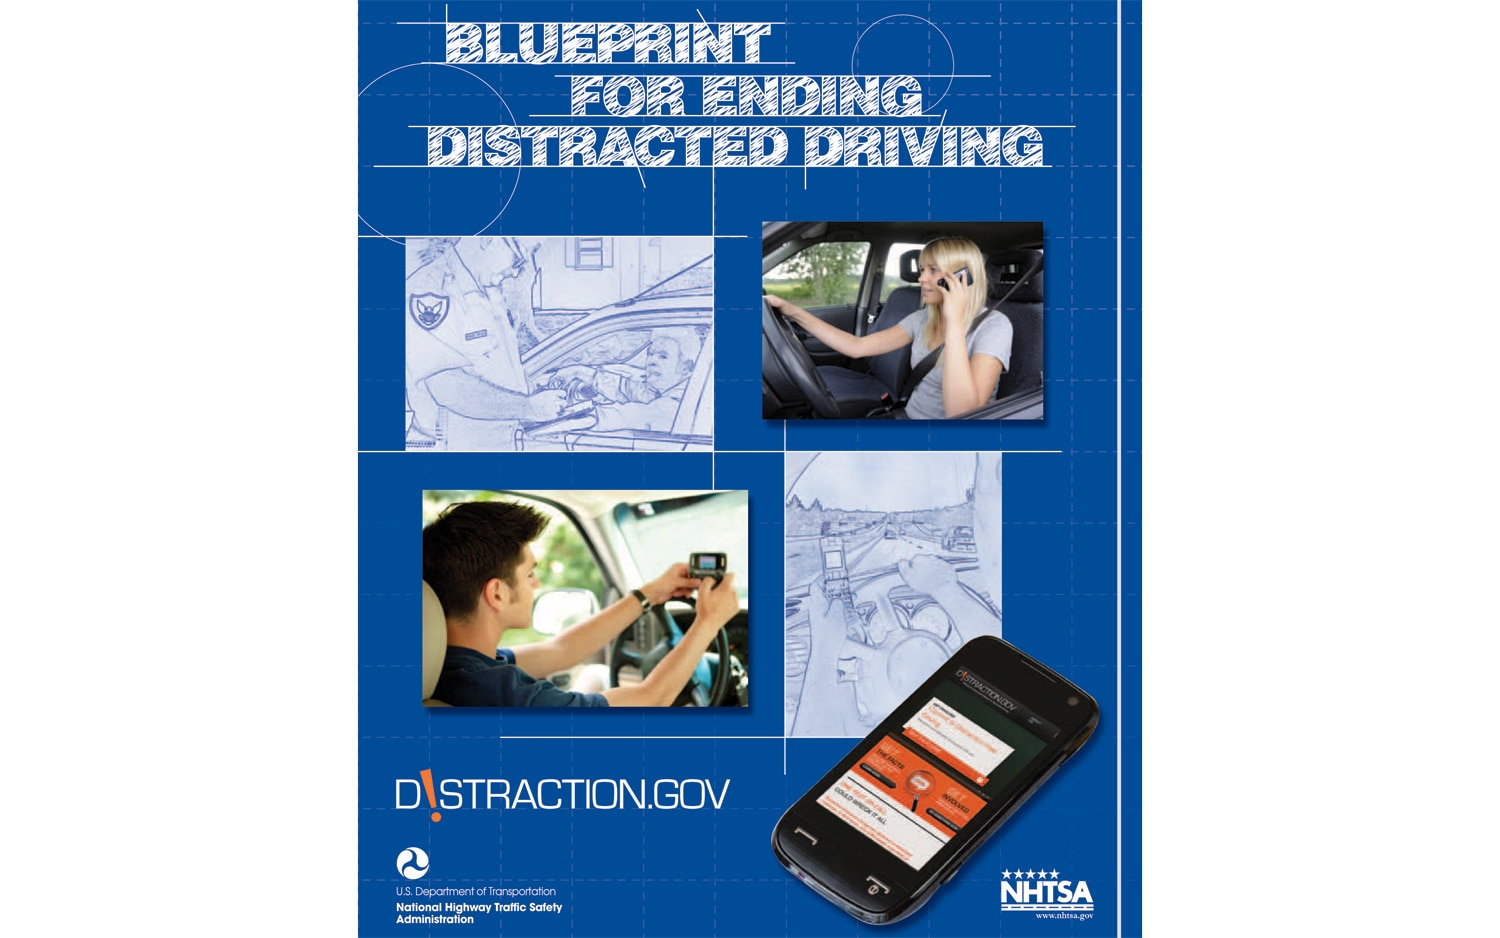 Blueprint For Ending Distracted Driving1